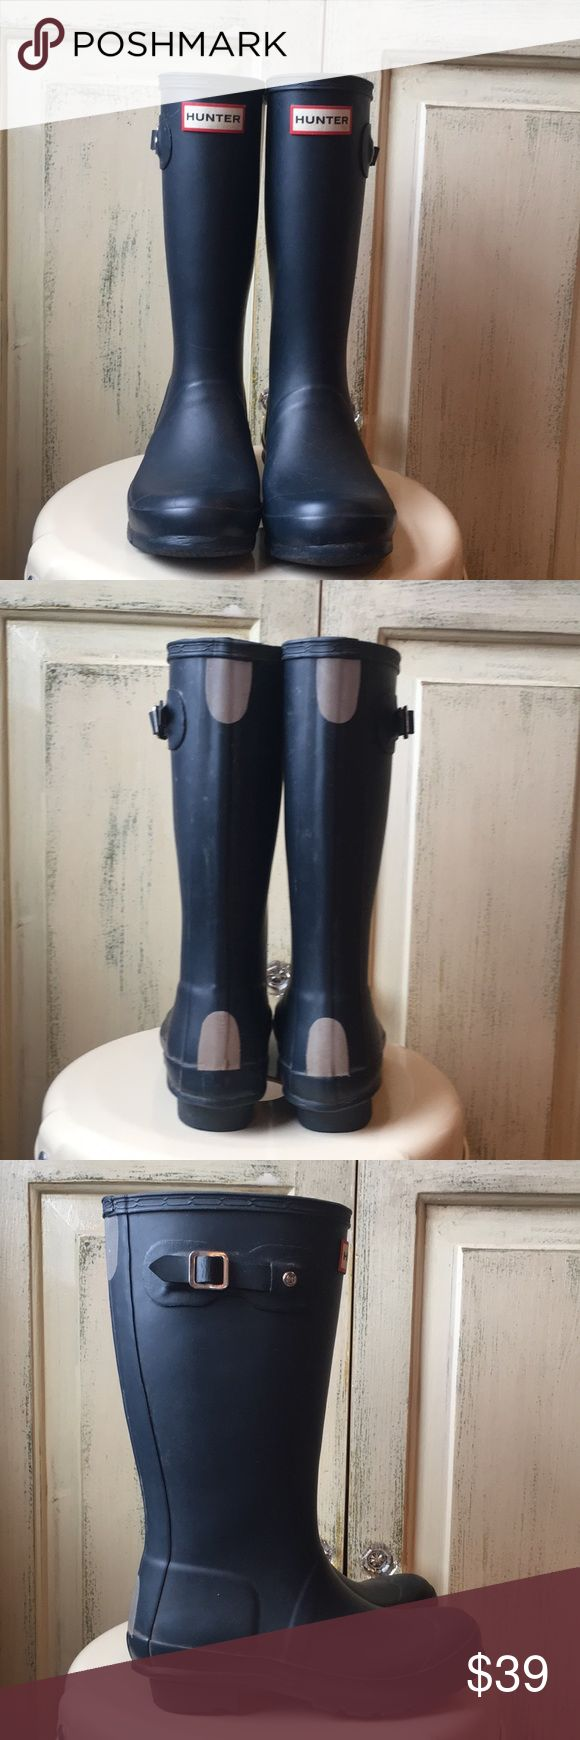 Kids Hunter rain boots navy blue size 1.5 The handcrafted Original Kids Rain Boot forms a smaller version of the iconic adult boot.  A reflective back strap and graded leg heights offer safety and comfort for growing children. Waterproof, textile lining, natural rubber, matte finish. Hunter Shoes Rain & Snow Boots #Childrenrainboots #childrensnow